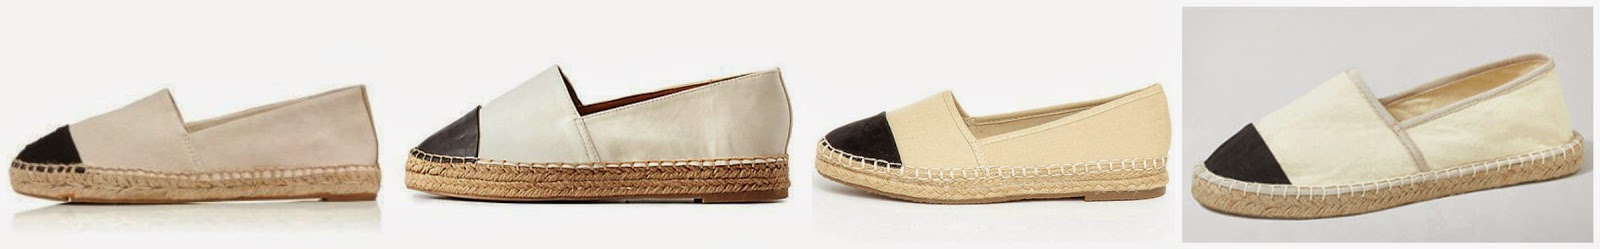 How well do you know Tory? One of these are the famous Tory Burch espadrille flats for $135.00 and the other three are all under $35. Can you guess which ones are the more expensive shoes? Click the links below to see if you are correct!